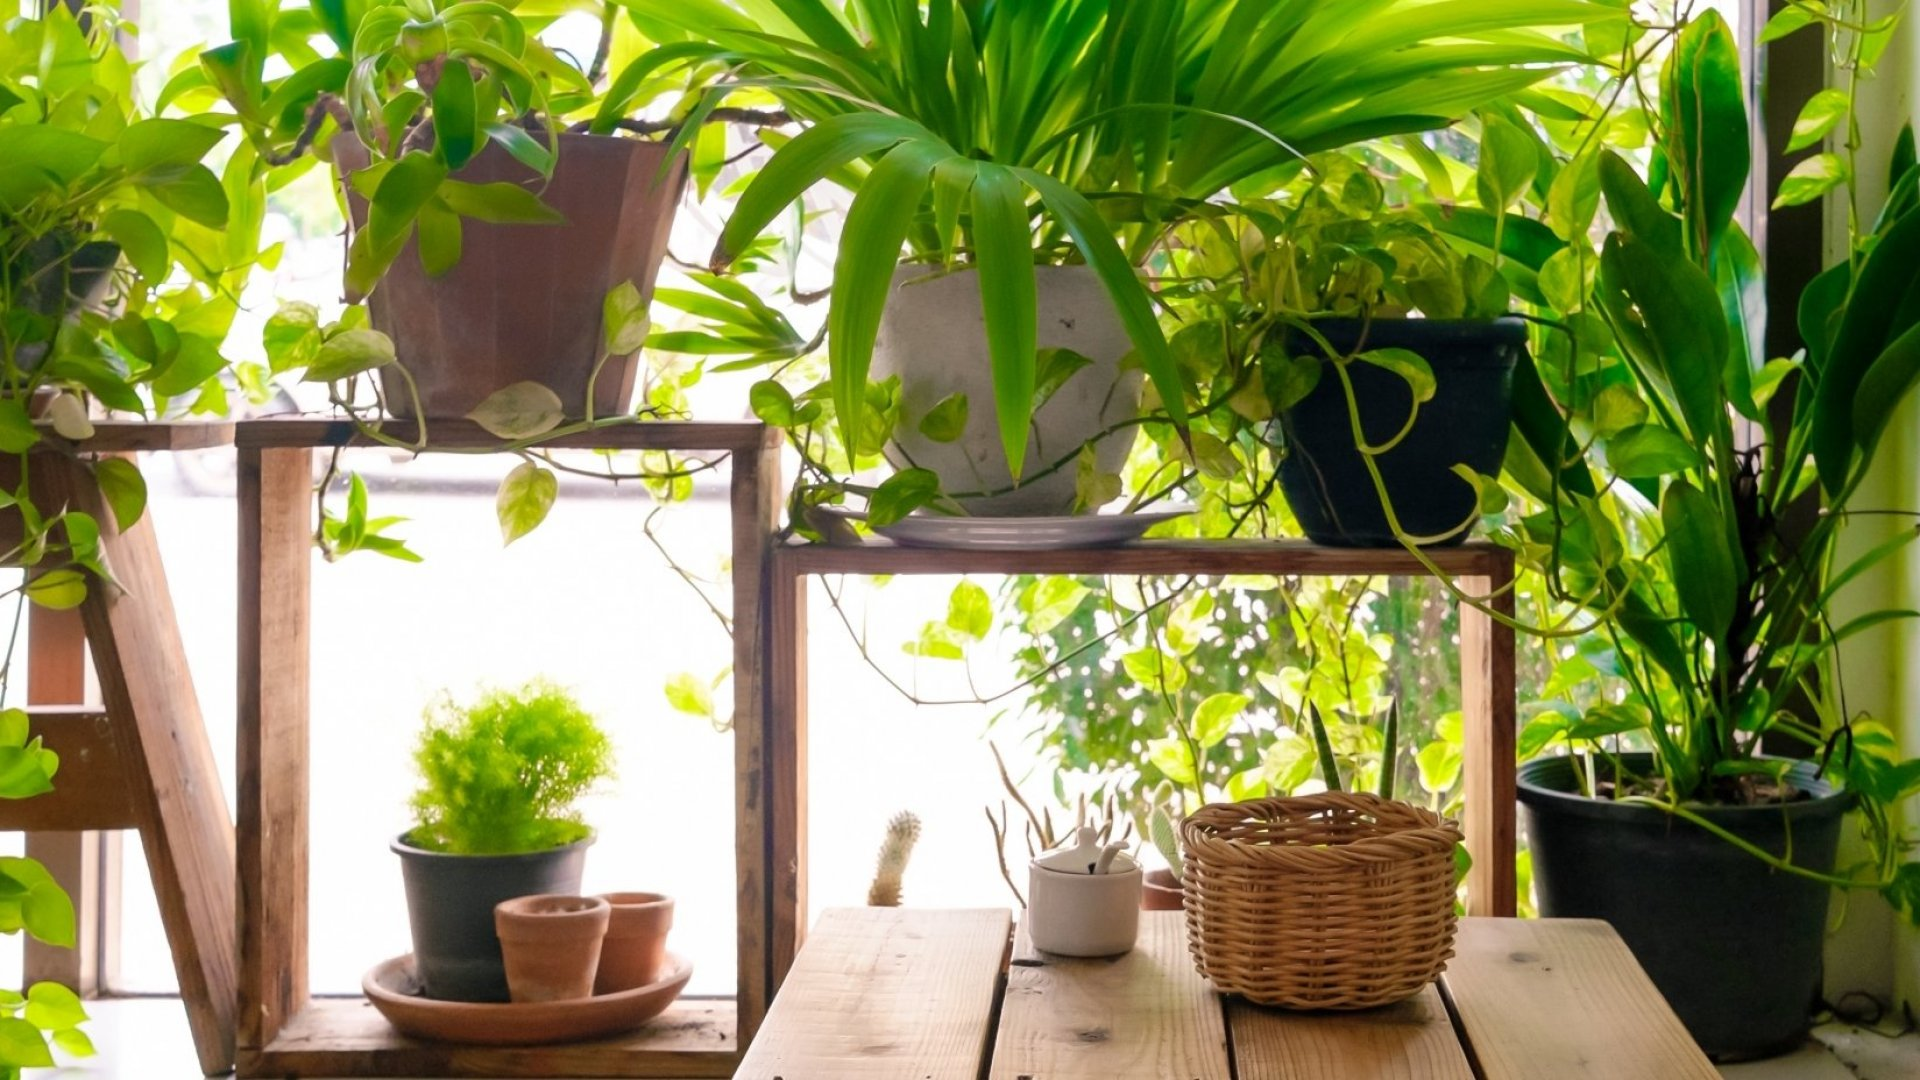 Doctors Are Now Prescribing Houseplants for Anxiety and Depression